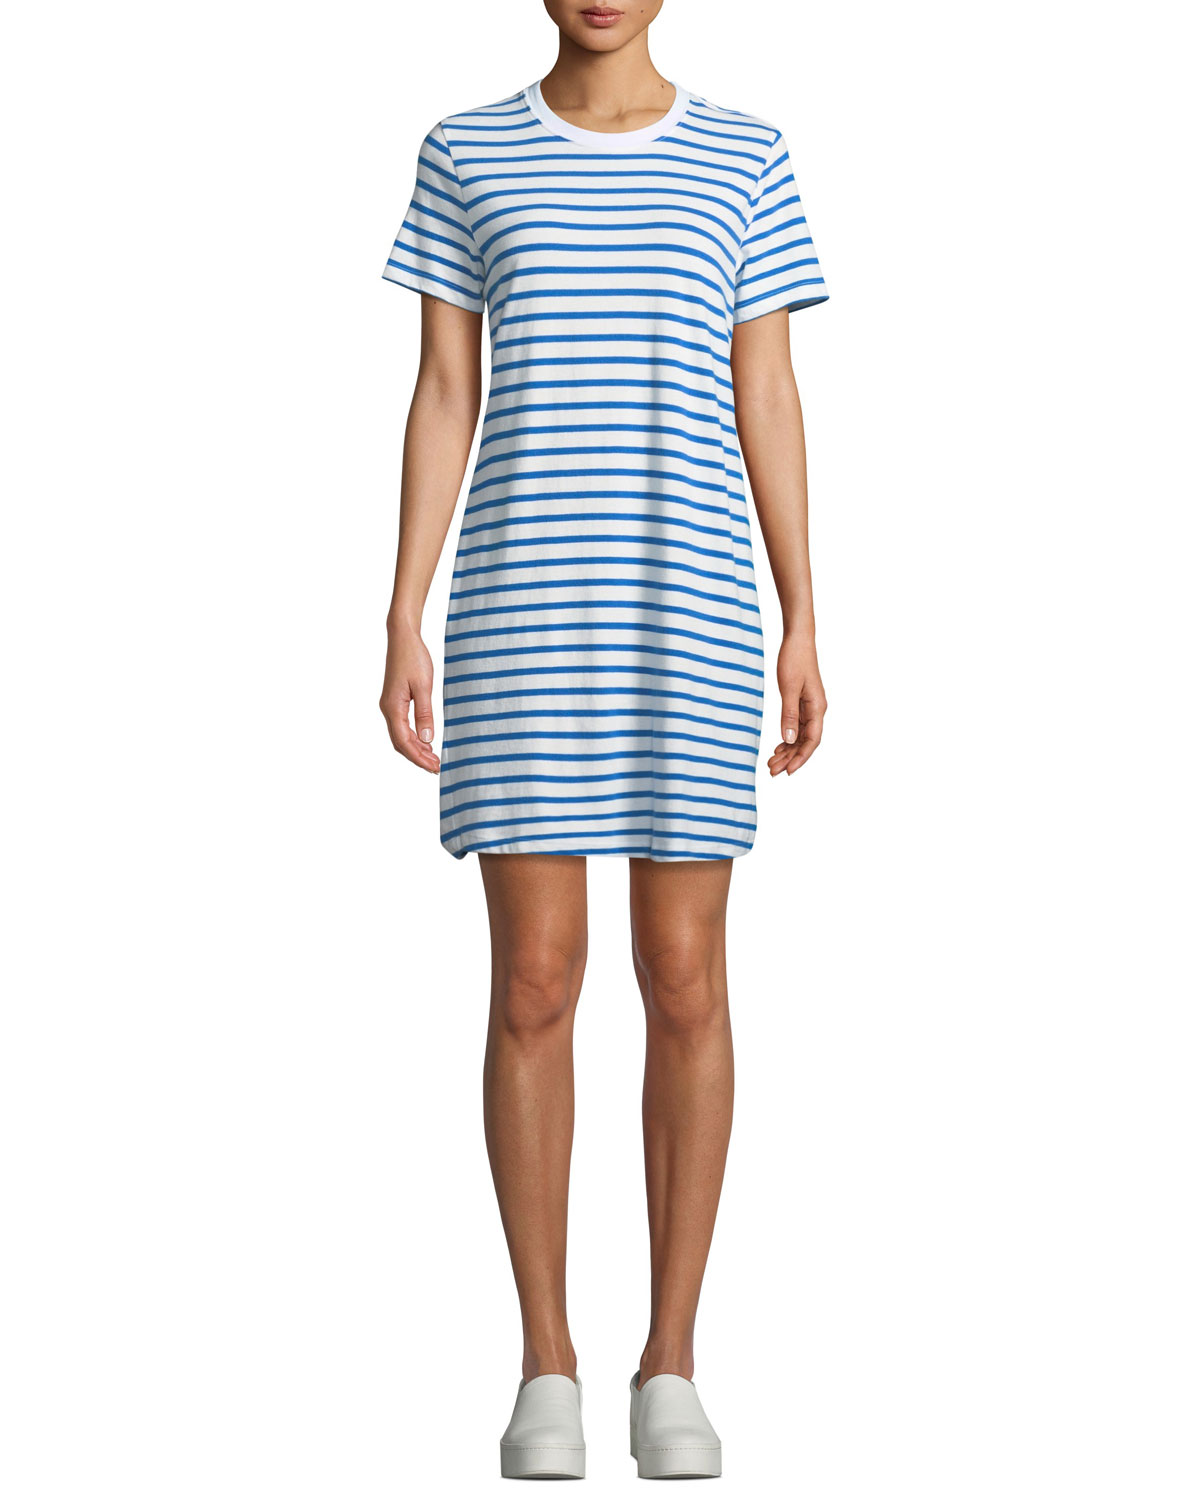 Beatnik Striped Crewneck Tee Dress